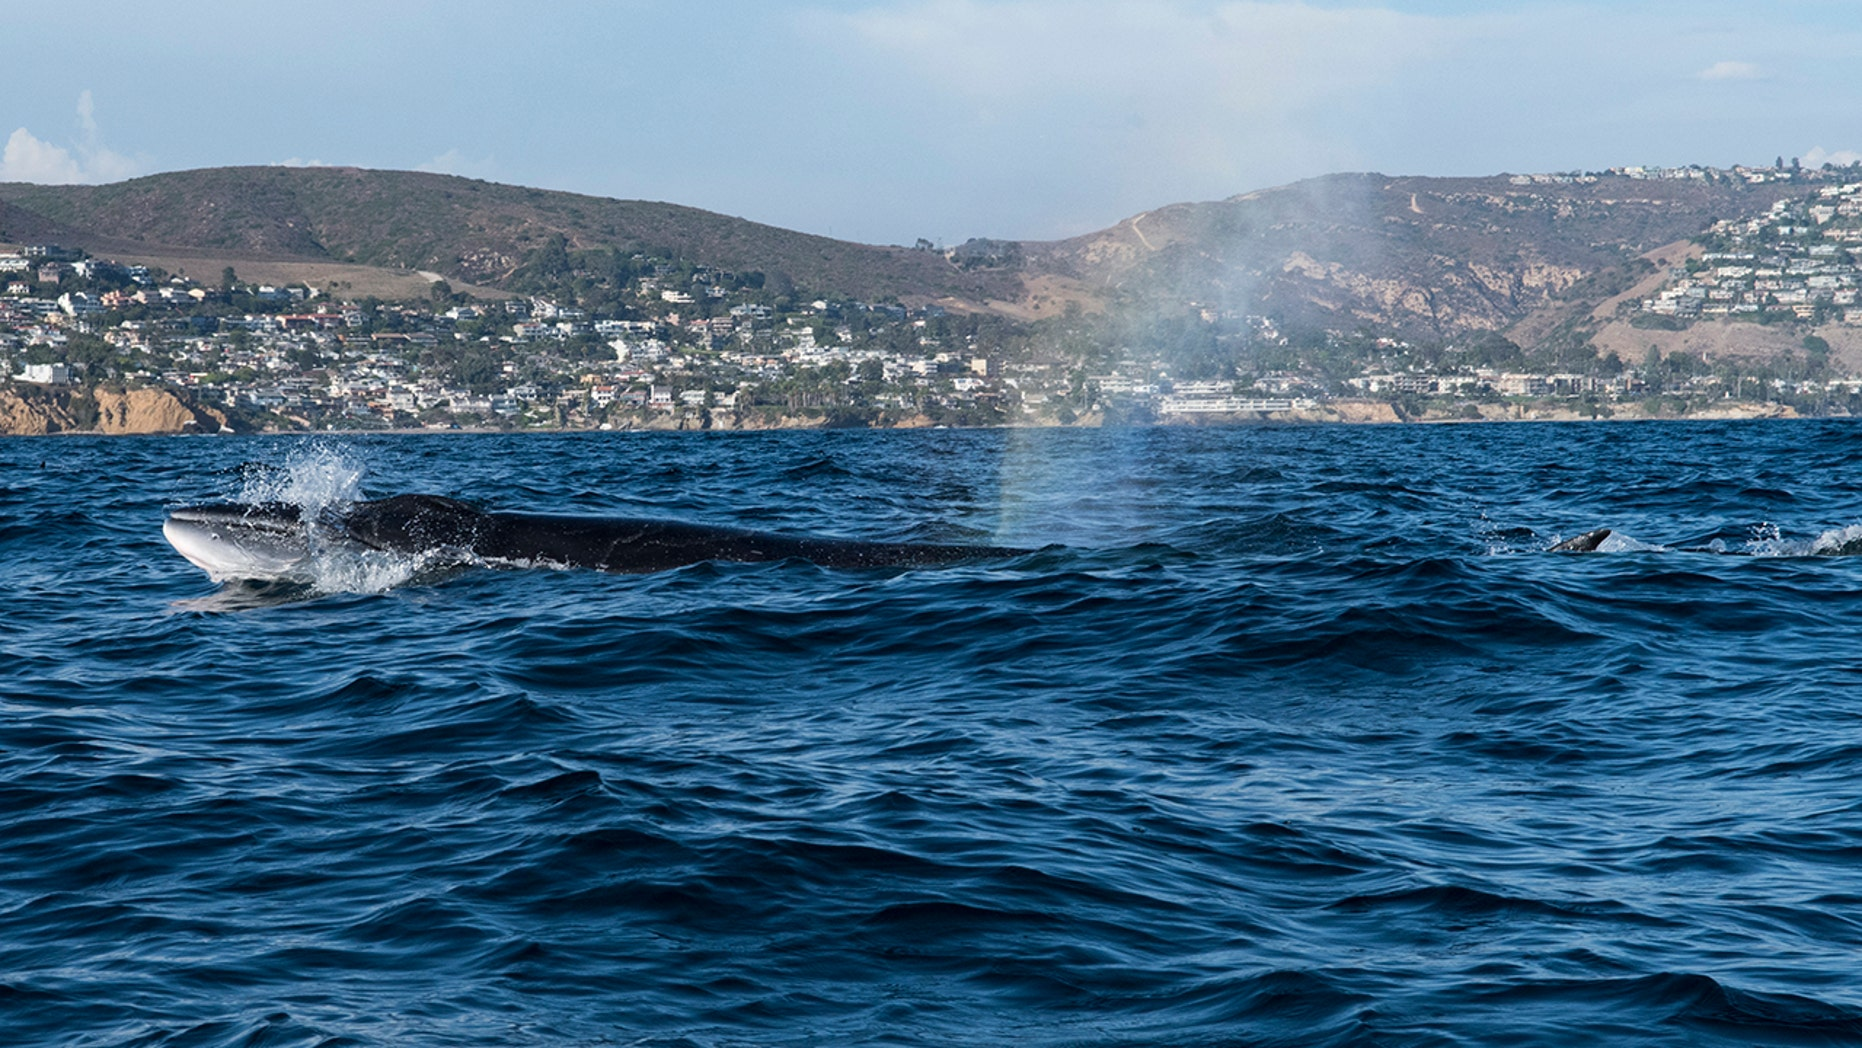 Sei whales are listed as endangered.